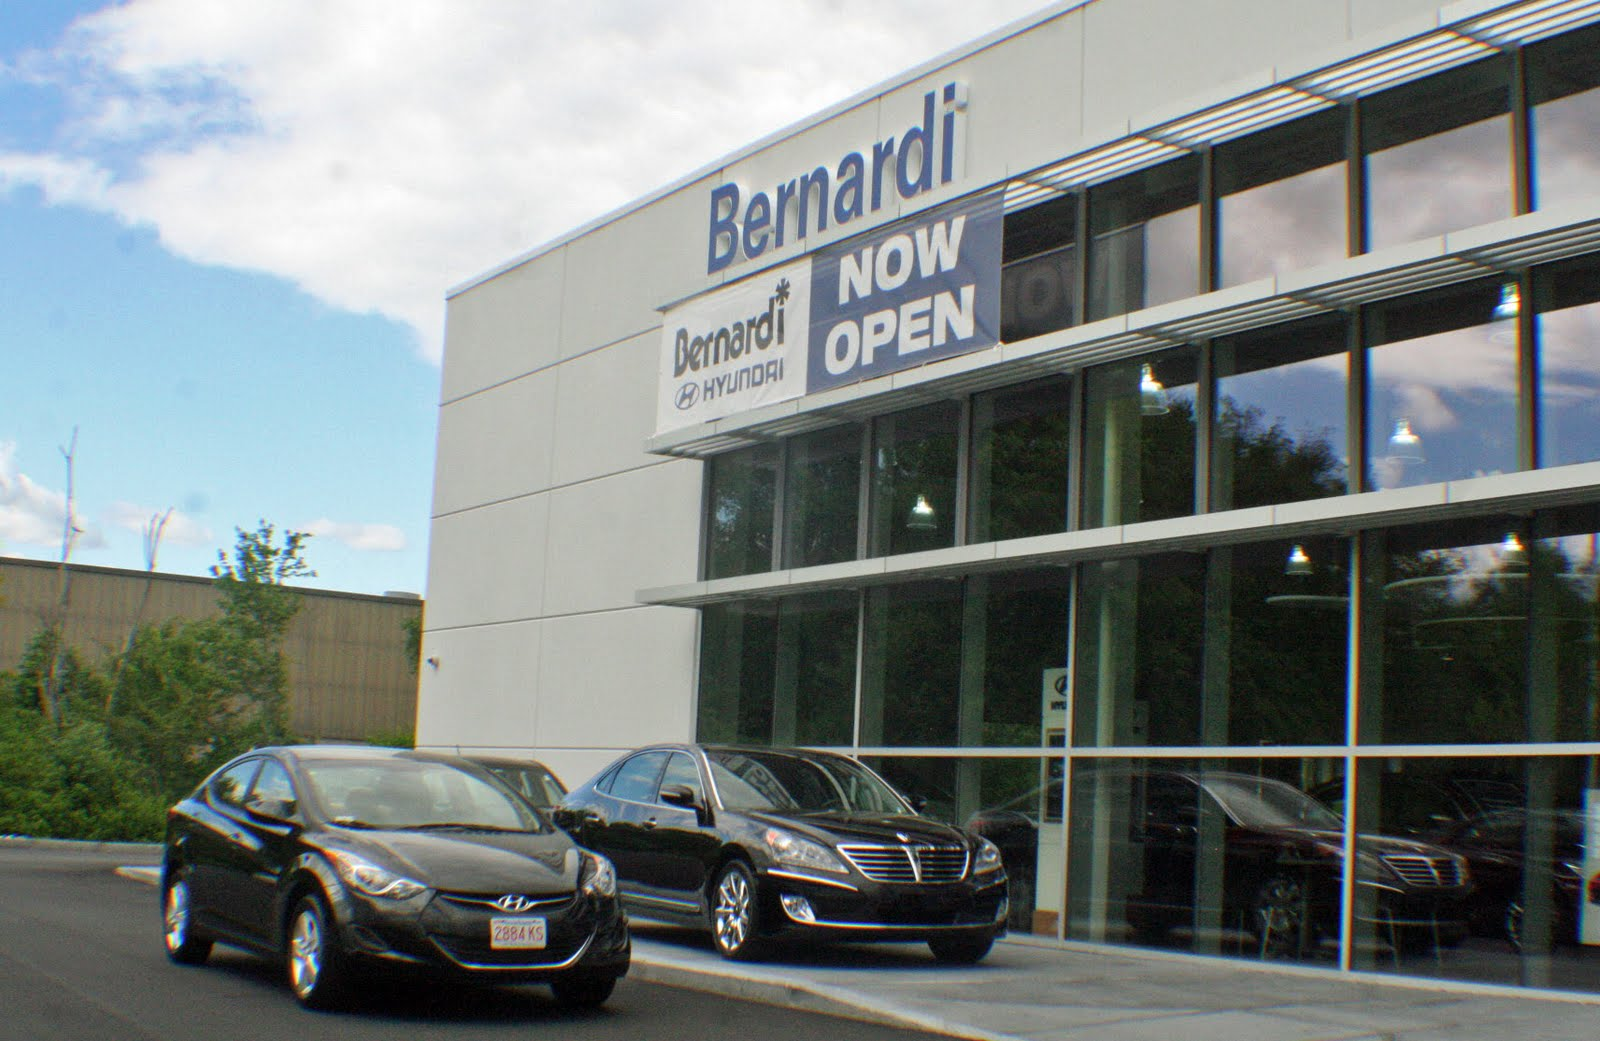 BROCKTON  Bernardi Auto Group Will Host A Grand Opening And Ribbon Cutting  Thursday June 16 At 6 P.m. The Event Will Celebrate The Opening Of Two New  ...